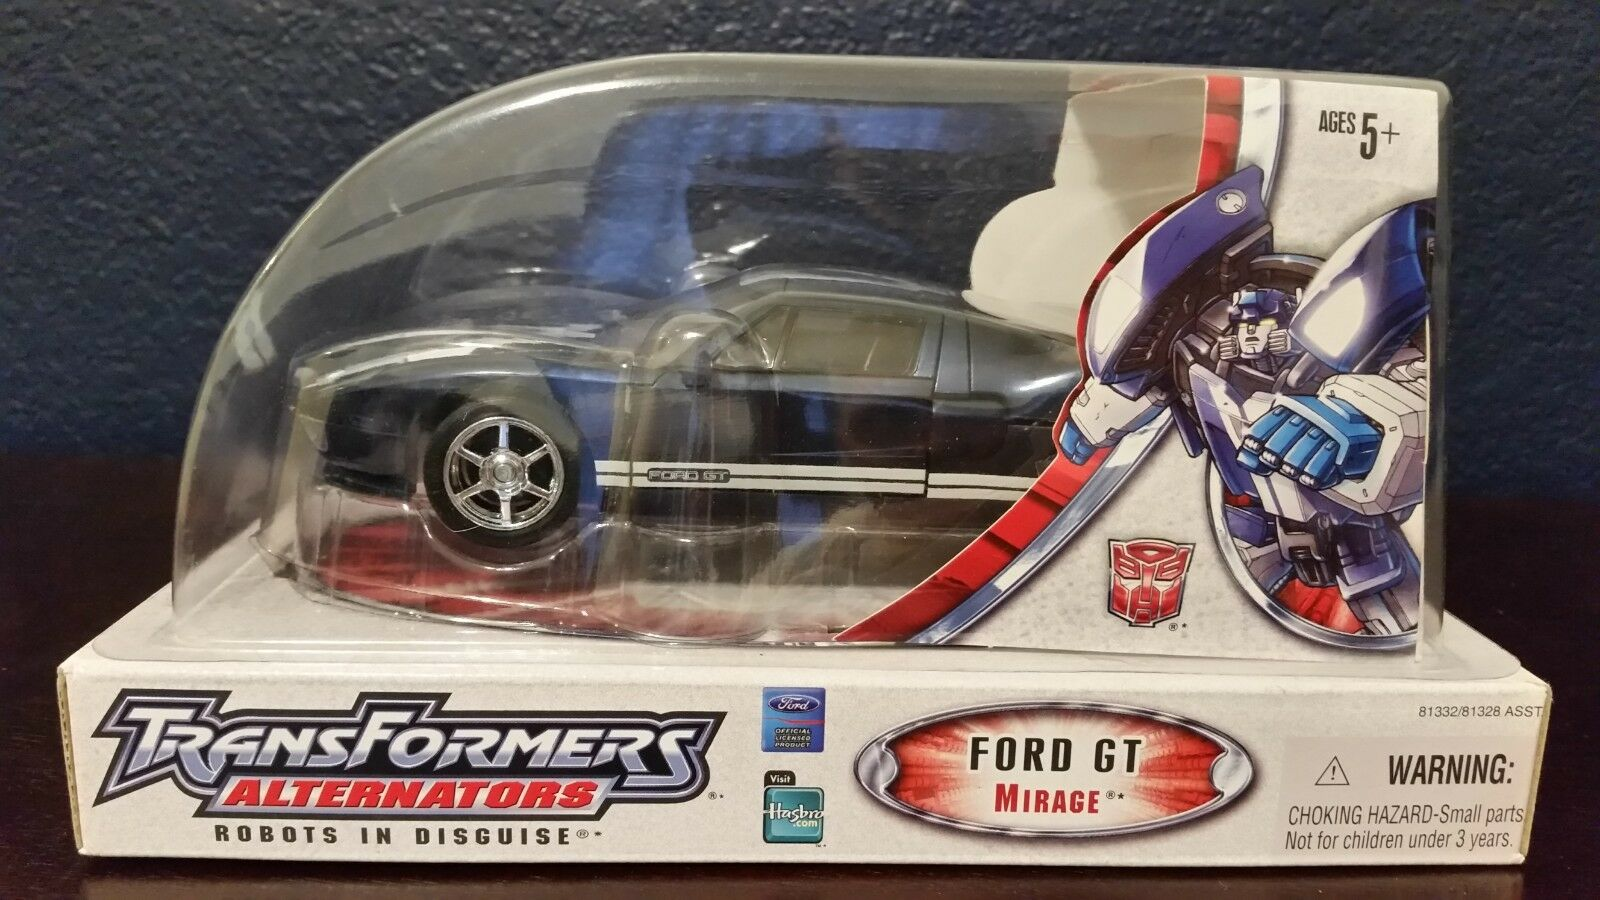 Transformers Alternators Ford GT Mirage Action Figure